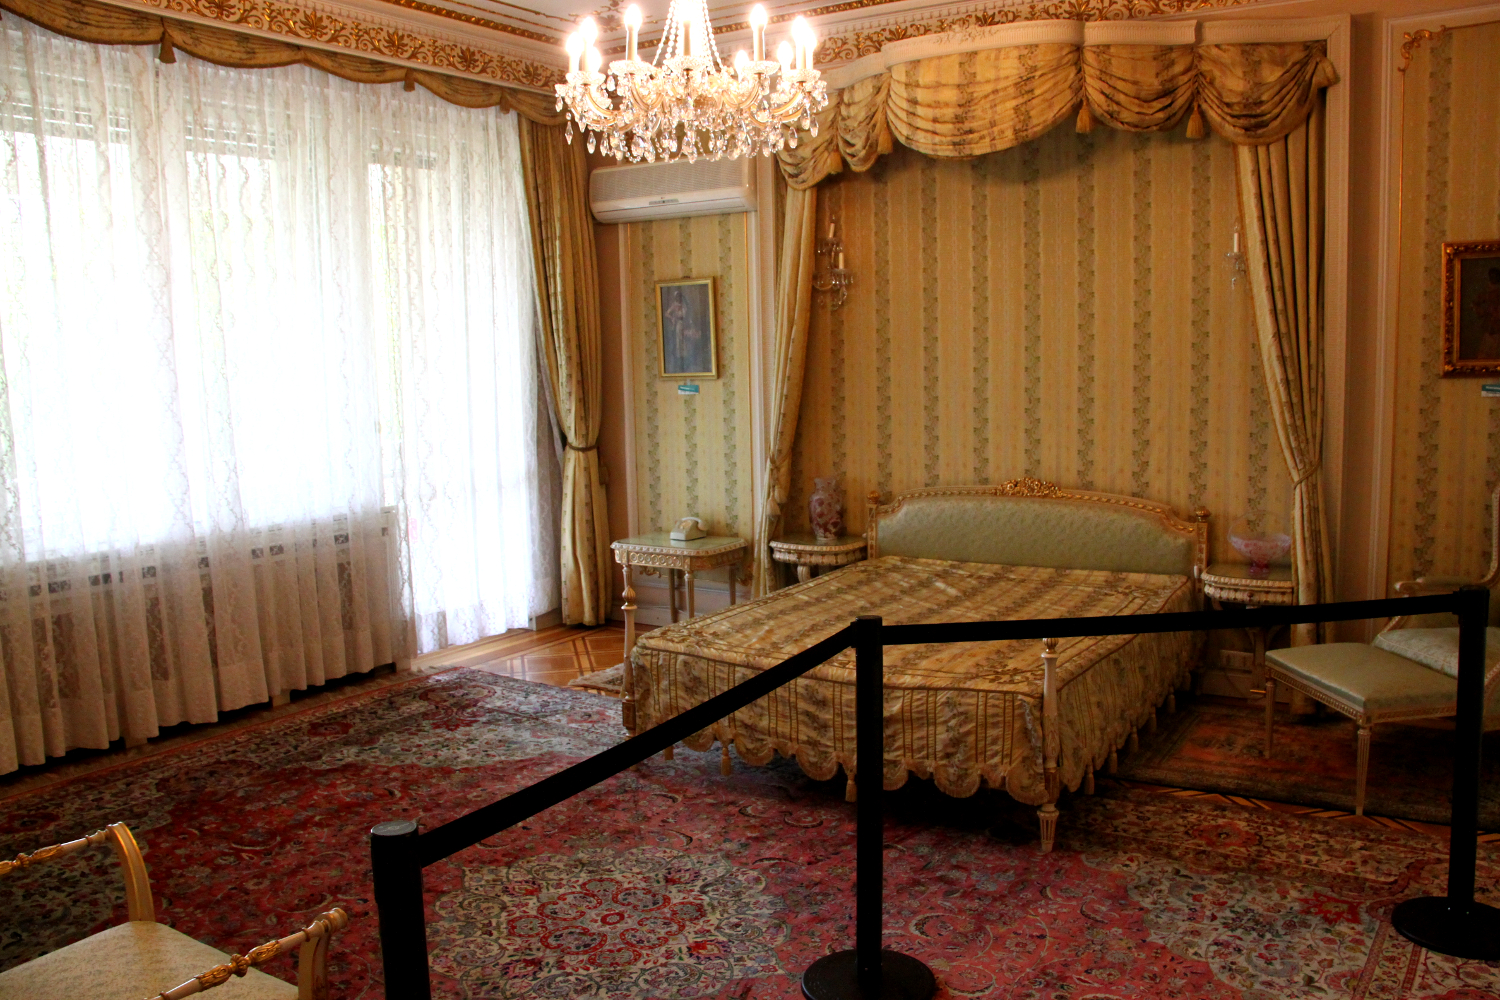 Primaverii (Spring) Palace, Ceausescu's private residence - Zoe Ceausescu's bedroom